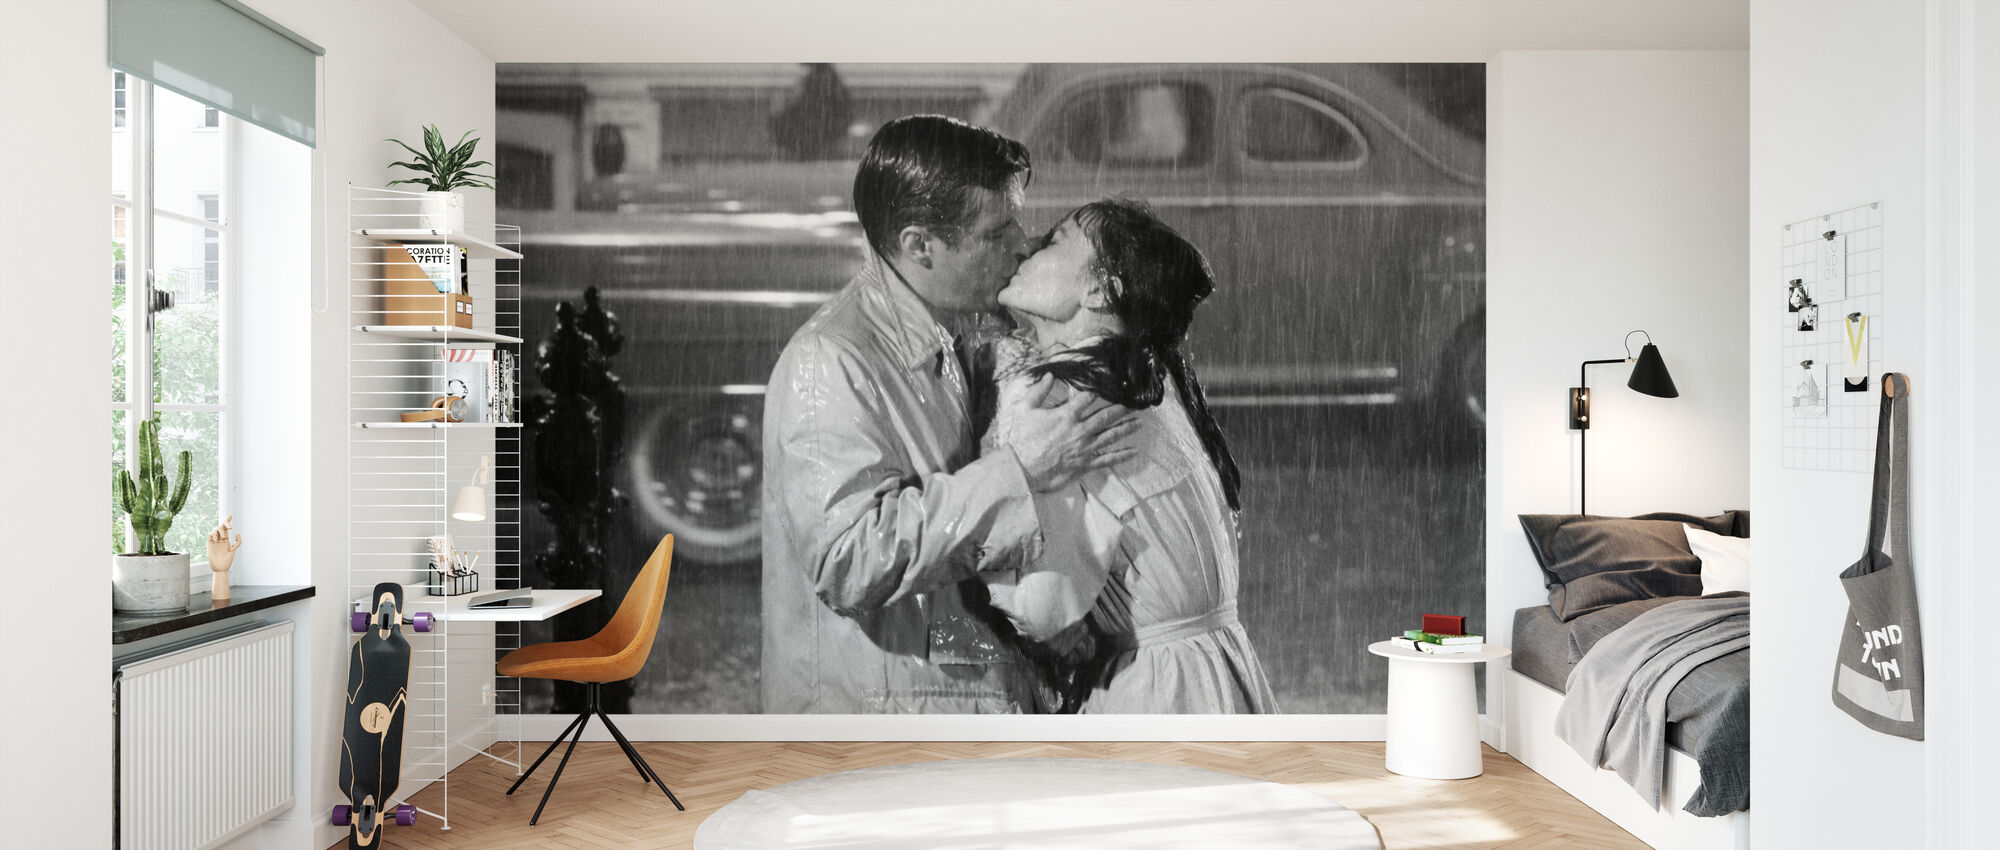 Audrey Hepburn and George Peppard in Breakfast at Tiffanys - Wallpaper - Kids Room